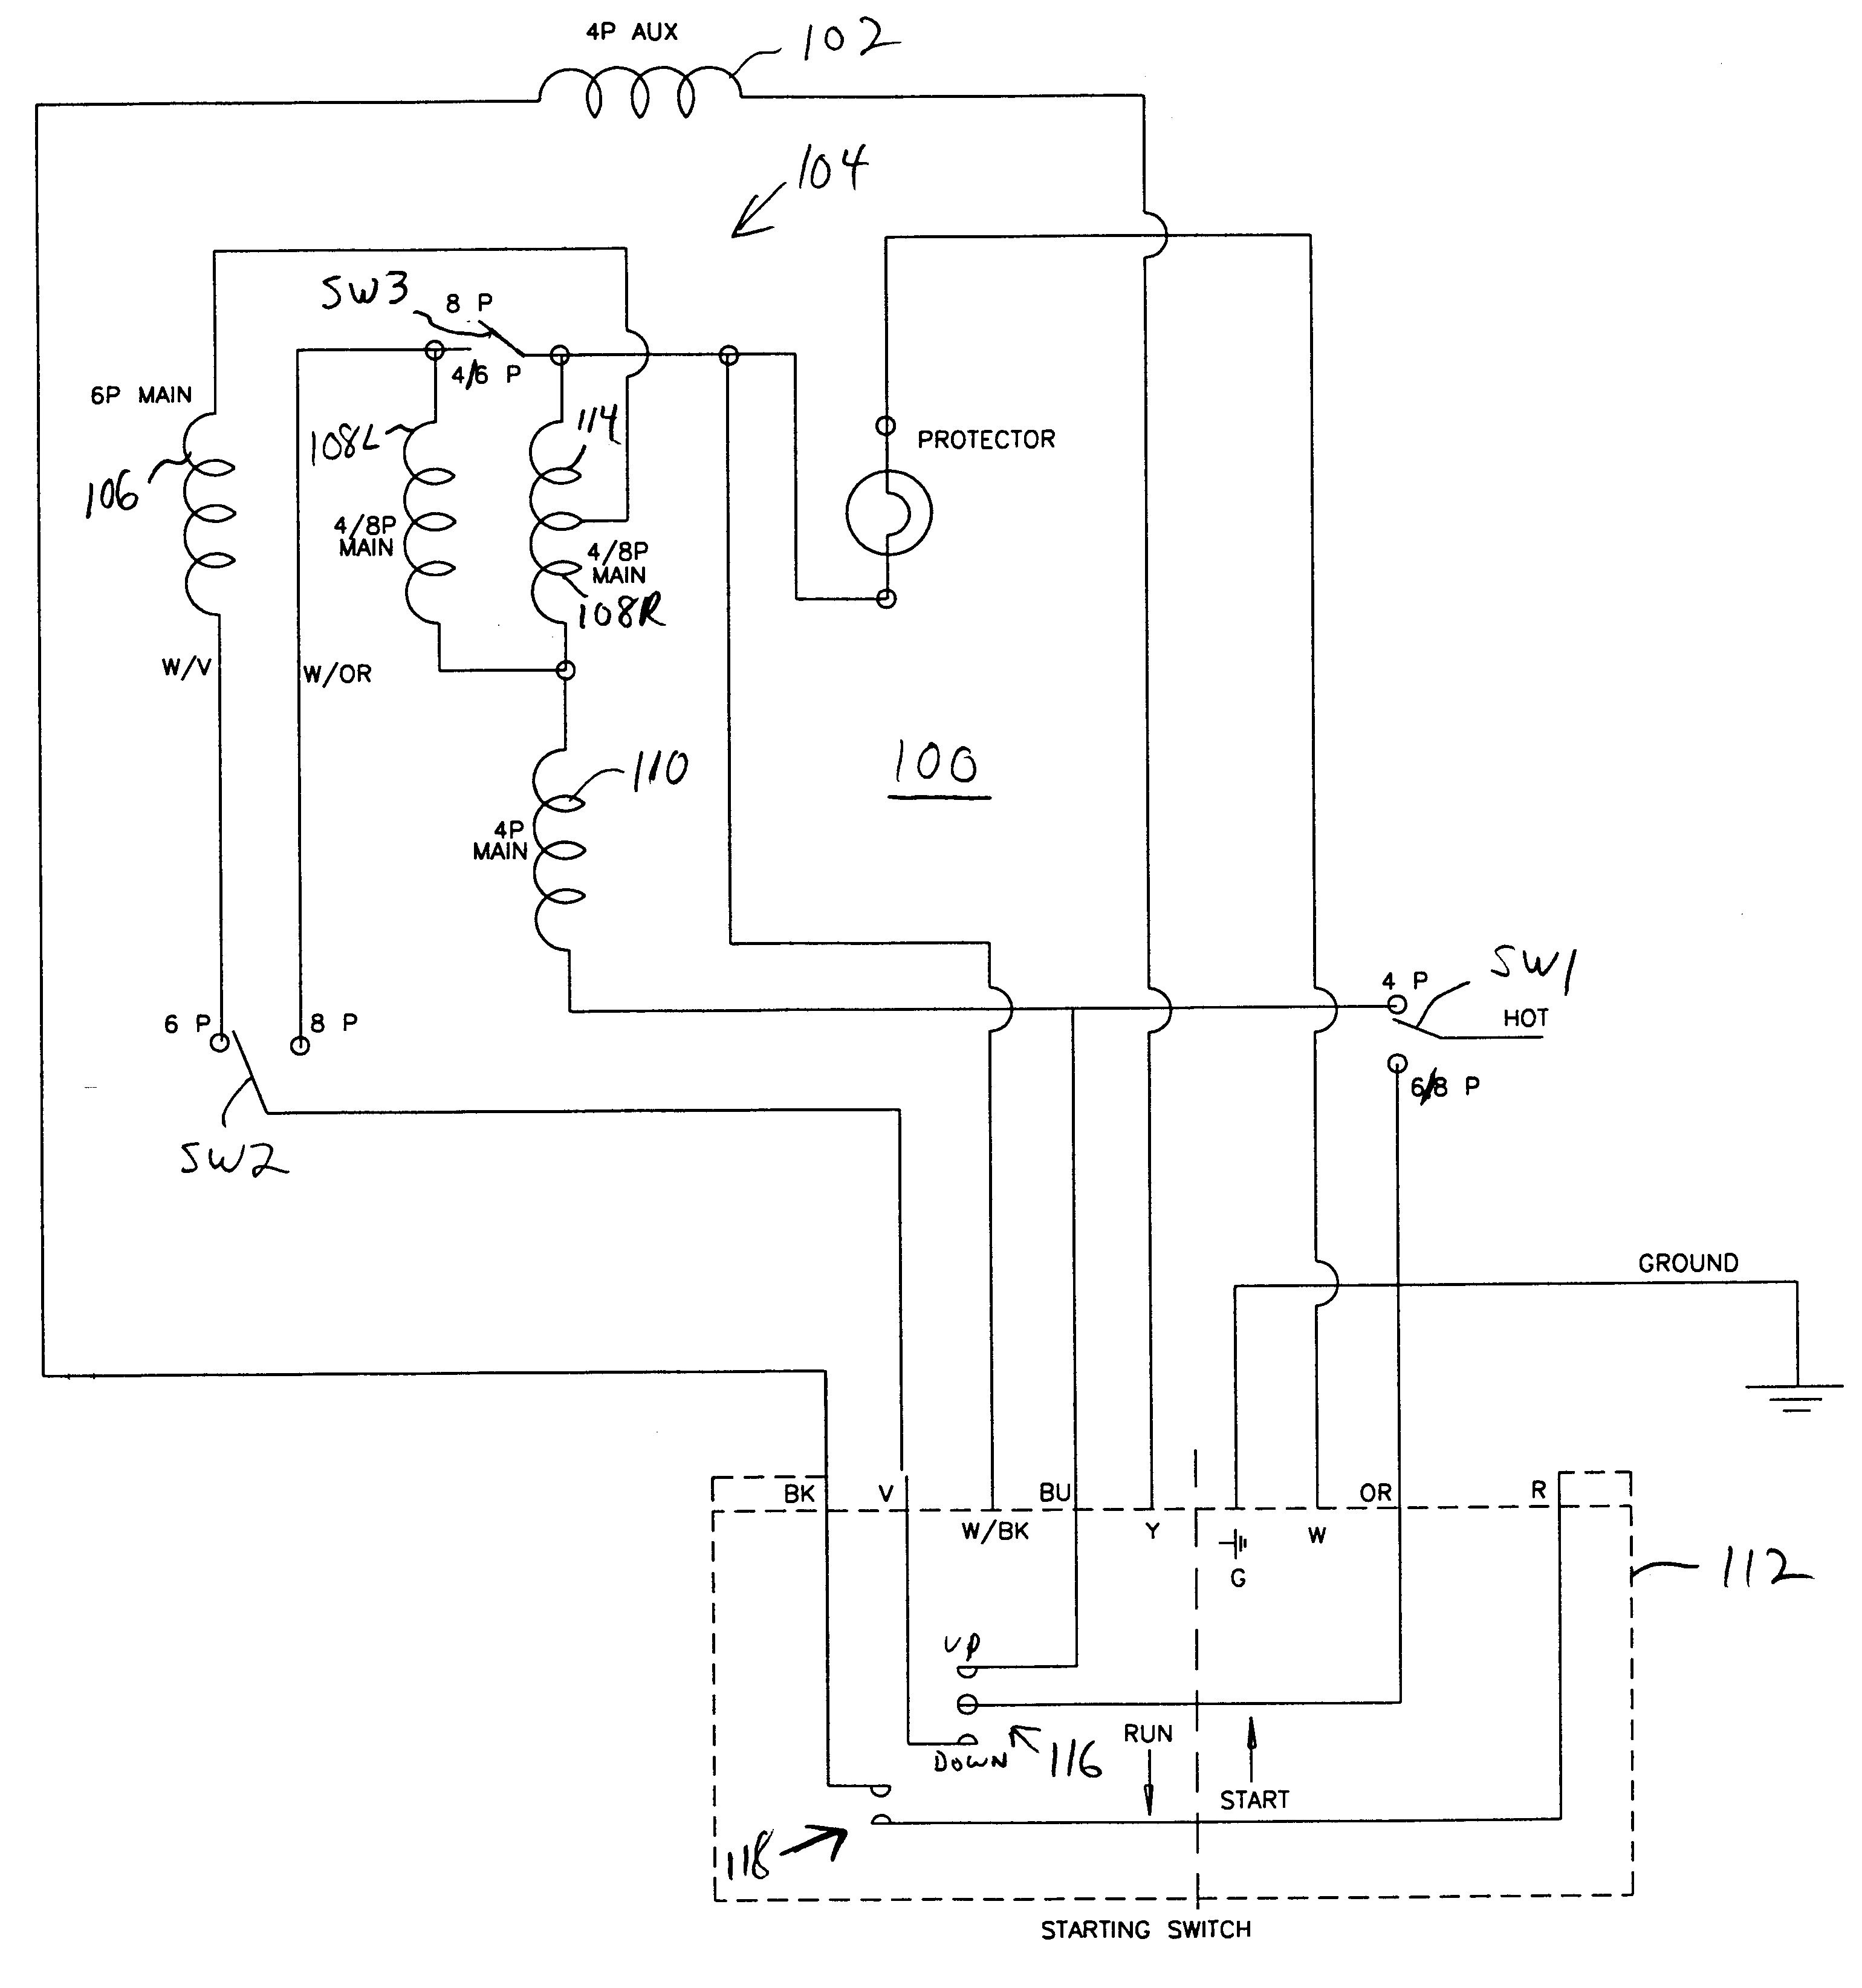 Wiring Diagram for 230v Single Phase Motor | Wiring Diagram ... on 230v wire color, window unit air conditioner wiring diagram, motor wiring diagram, hydraulic wiring diagram, 3 wire plug wiring diagram, 220 plug wiring diagram, 240 volt wiring diagram, 220 volt wiring diagram, fire alarm control panel wiring diagram, 208 volt wiring diagram, fire alarm addressable system wiring diagram, air compressor starter wiring diagram, class 2 transformer wiring diagram, electric hot water tank wiring diagram, 208v plug wiring diagram, capacitors for compressor wiring diagram, 3 phase power diagram, pool pump 230 volt wiring diagram, socapex 19 pin 208v diagram, ac wiring diagram,